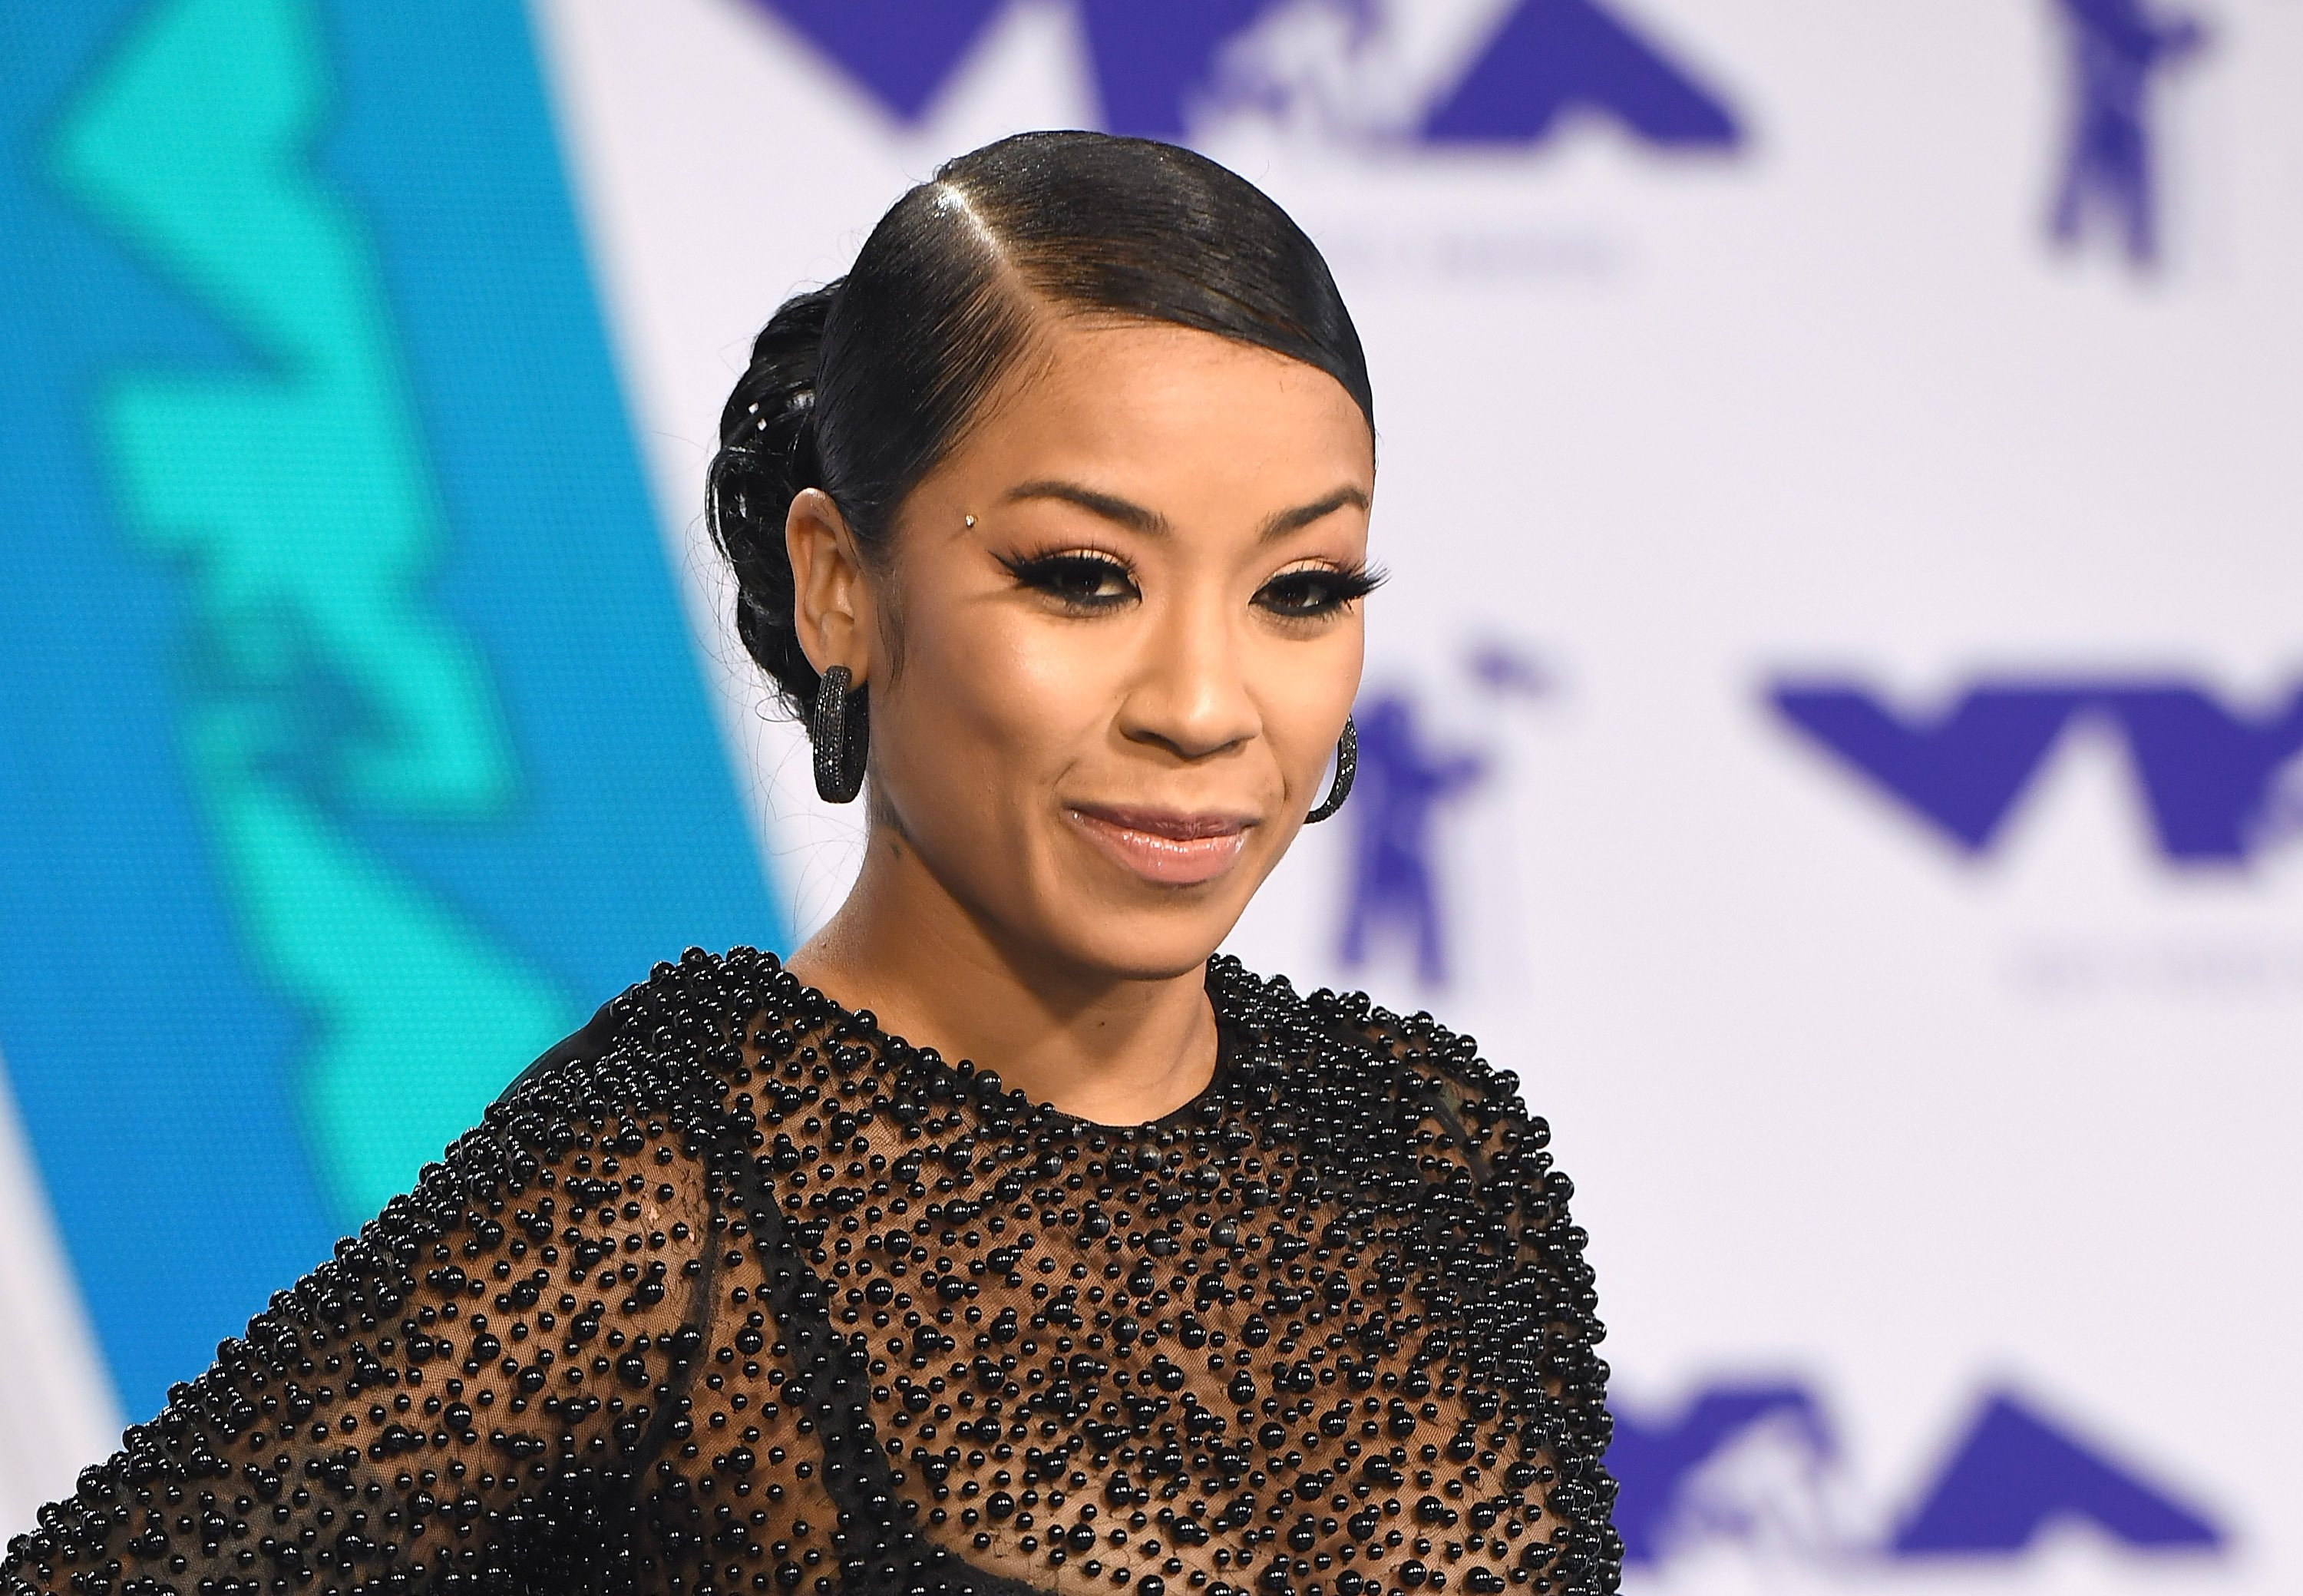 Keyshia Cole at the 2017 MTV Video Music Awards. | Photo: Getty Images